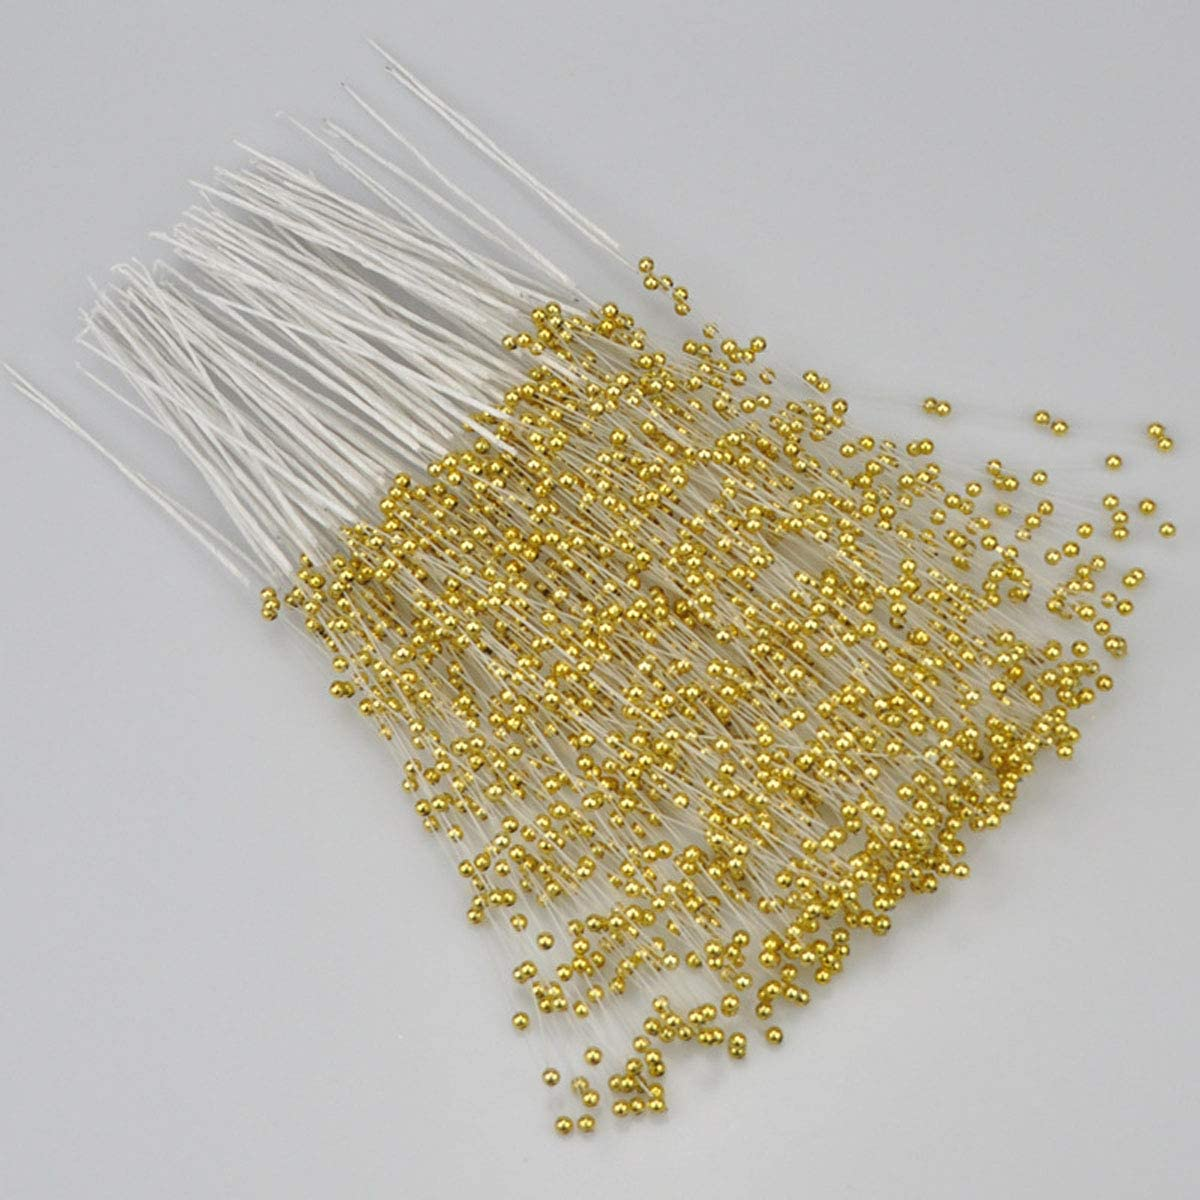 100PCS 4MM Bridal Wedding Pearl Bouquet Party ABS Pearls String Pearls Sticks Decor Christmas Party DIY Home Party Wedding Table Centerpiece (Gold)